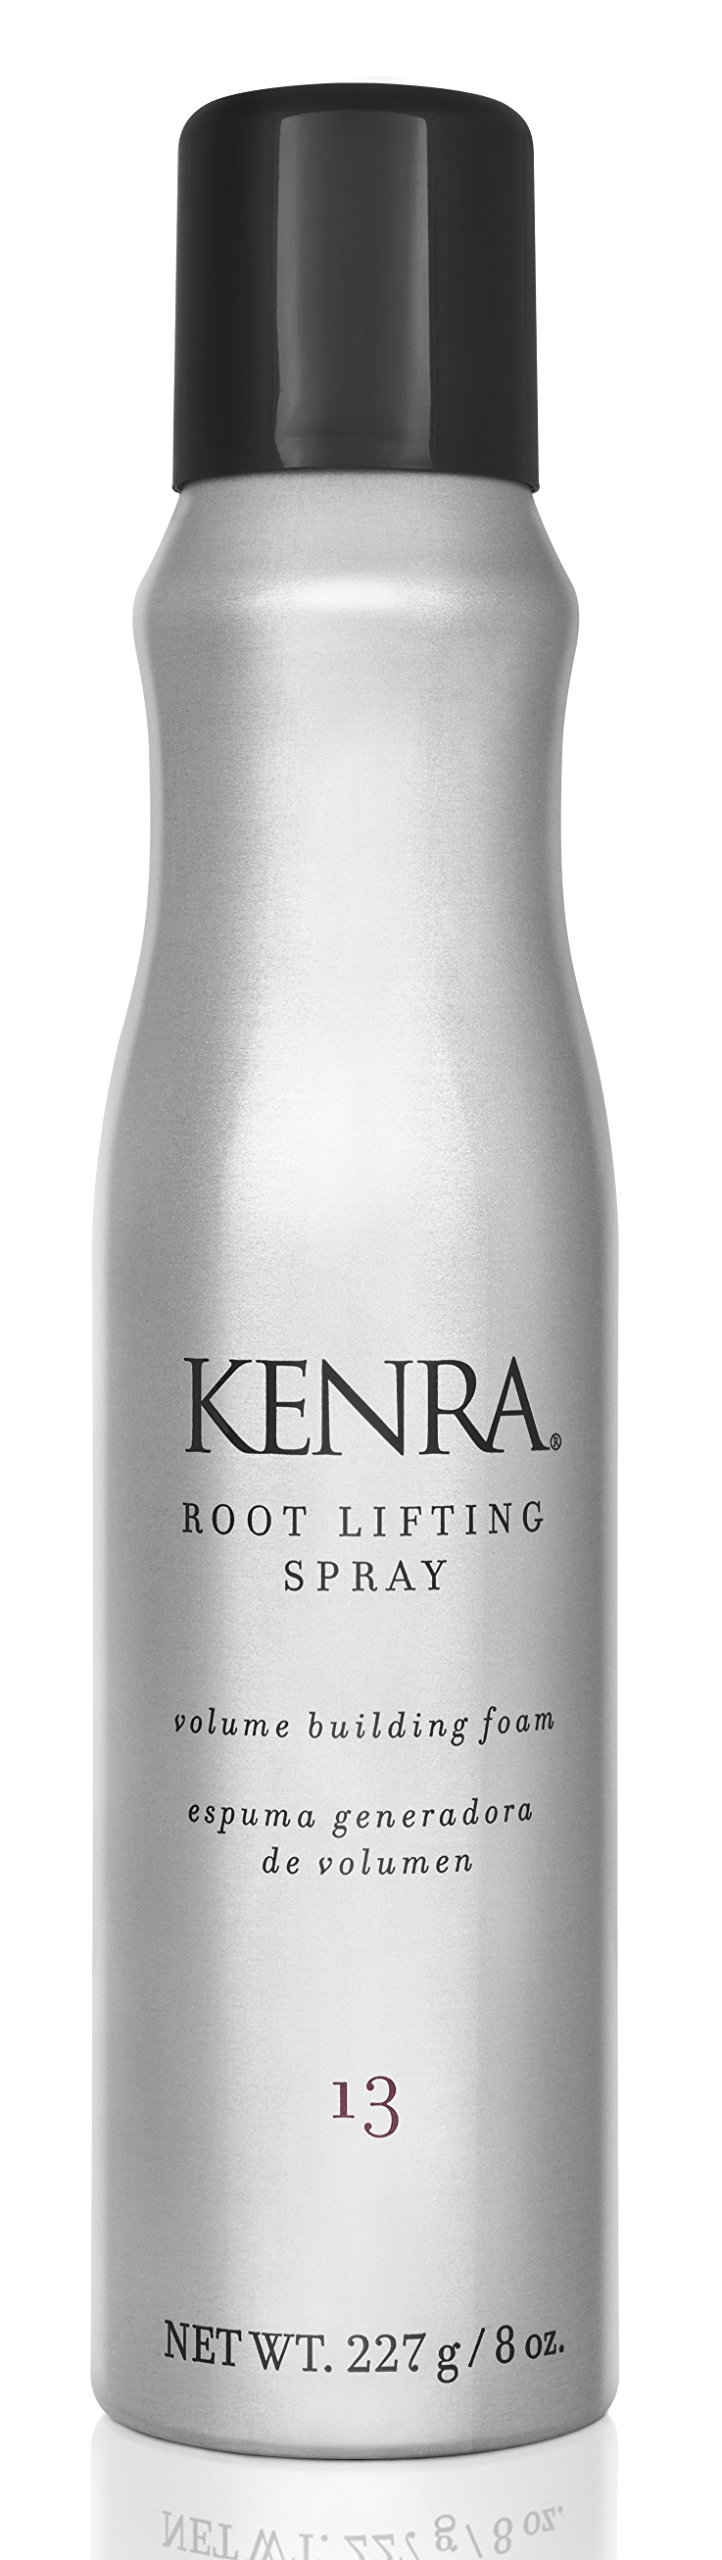 Kenra Root Lifting Spray #13, 8-Ounce by Kenra